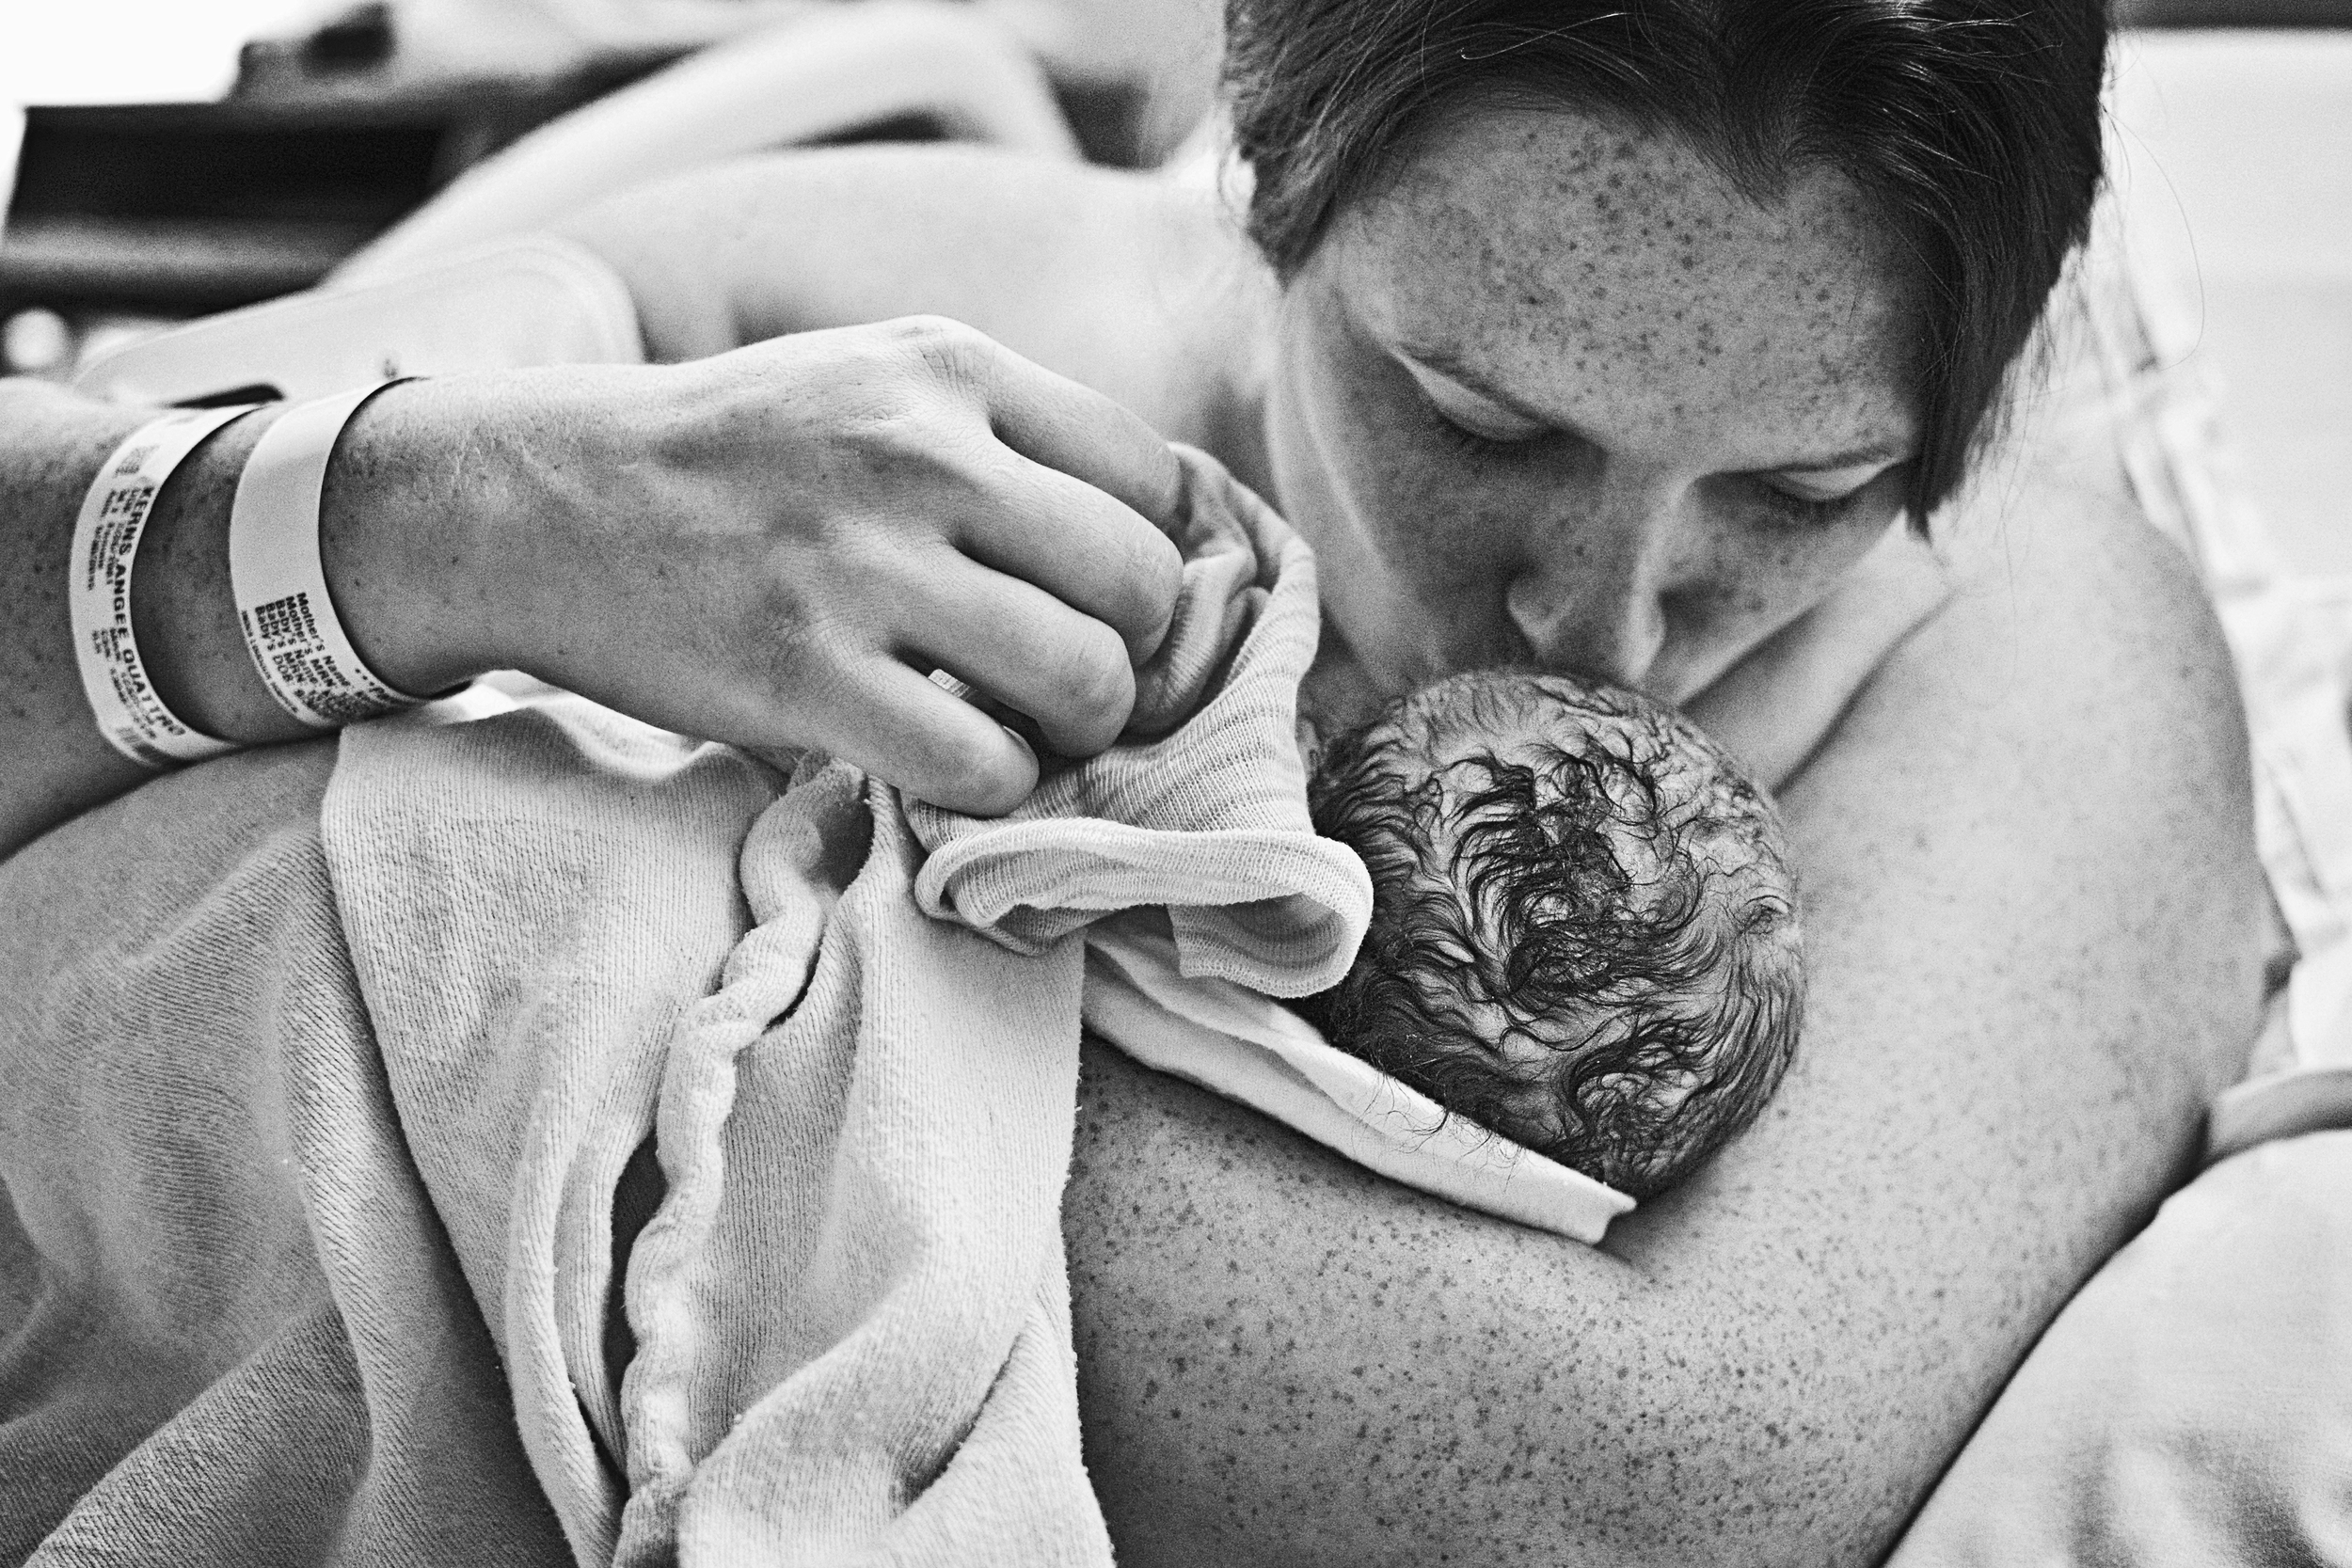 freckled mama kisses baby for the first time after labor